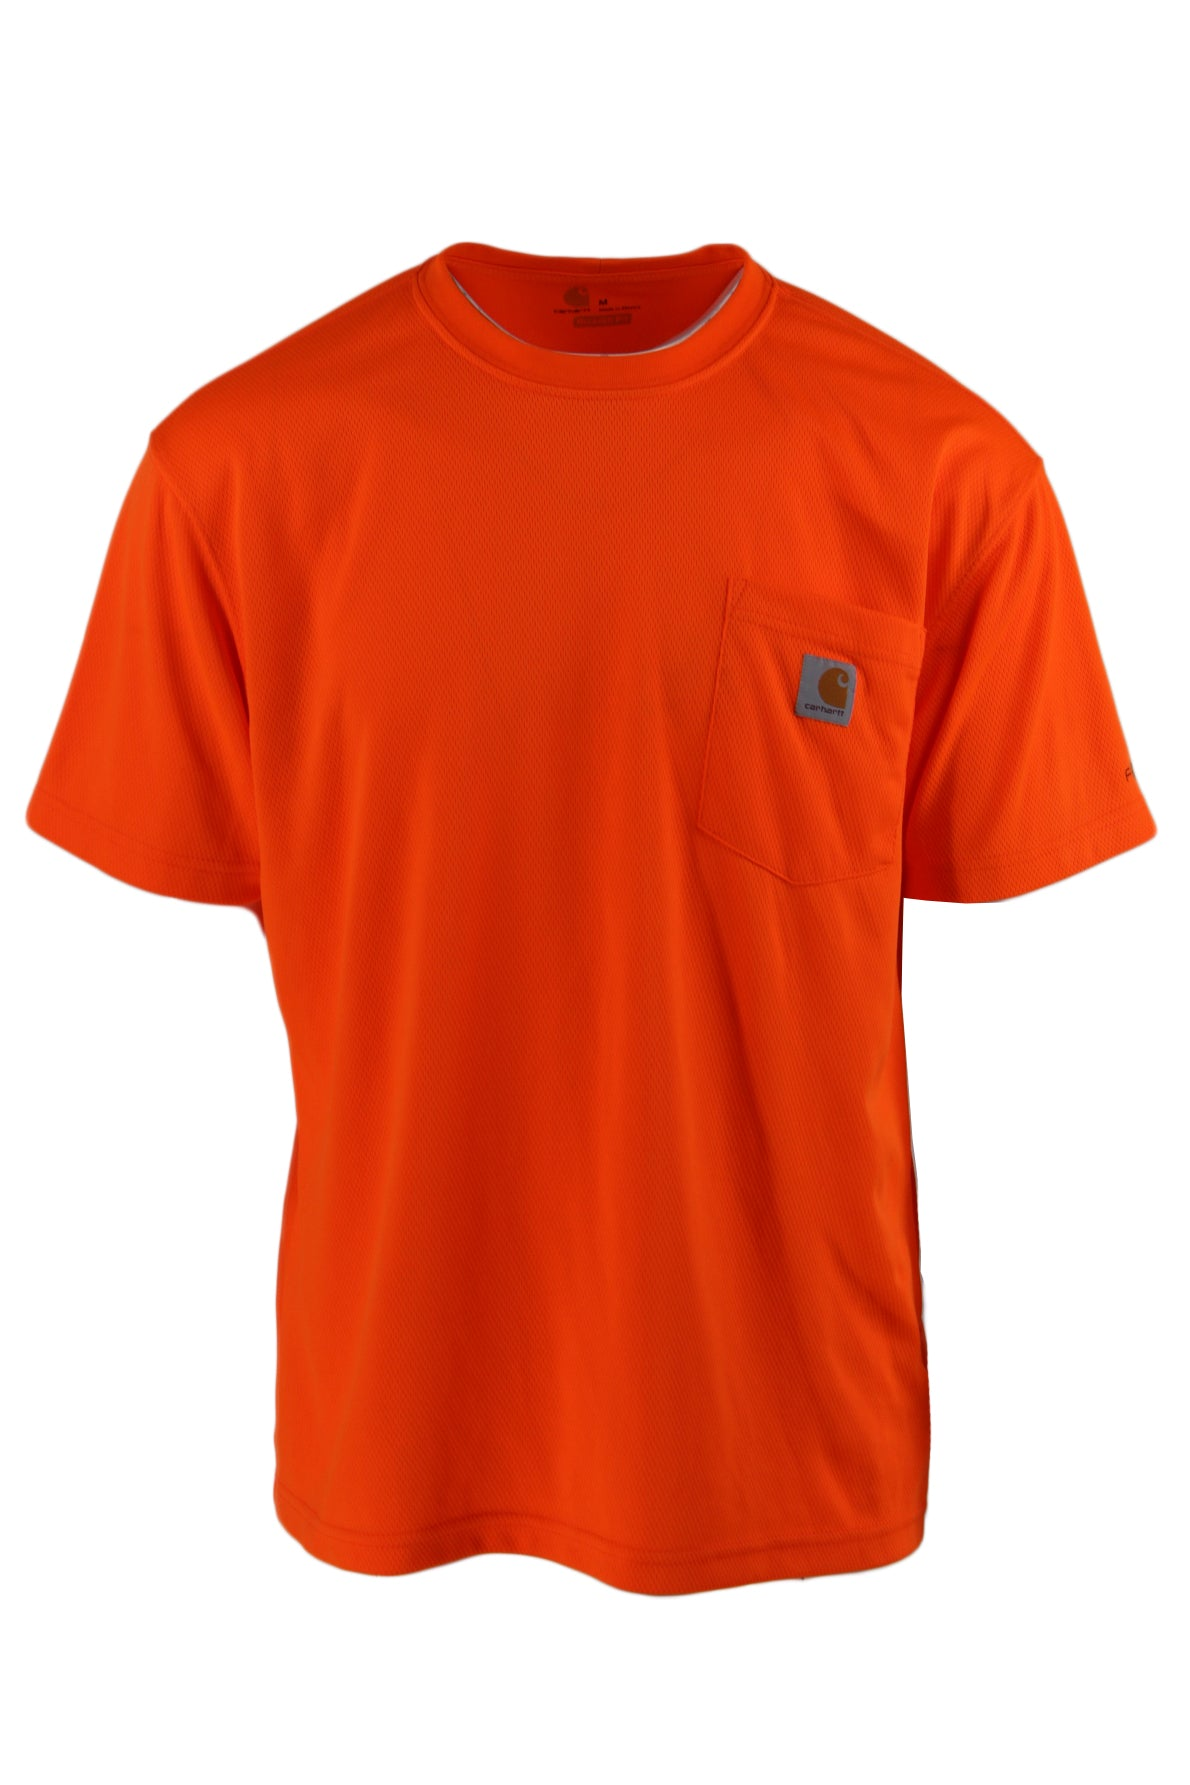 carhartt orange perforated t-shirt. features orange perforated exterior, round neckline, short sleeves and an exterior pocket with logo patch.